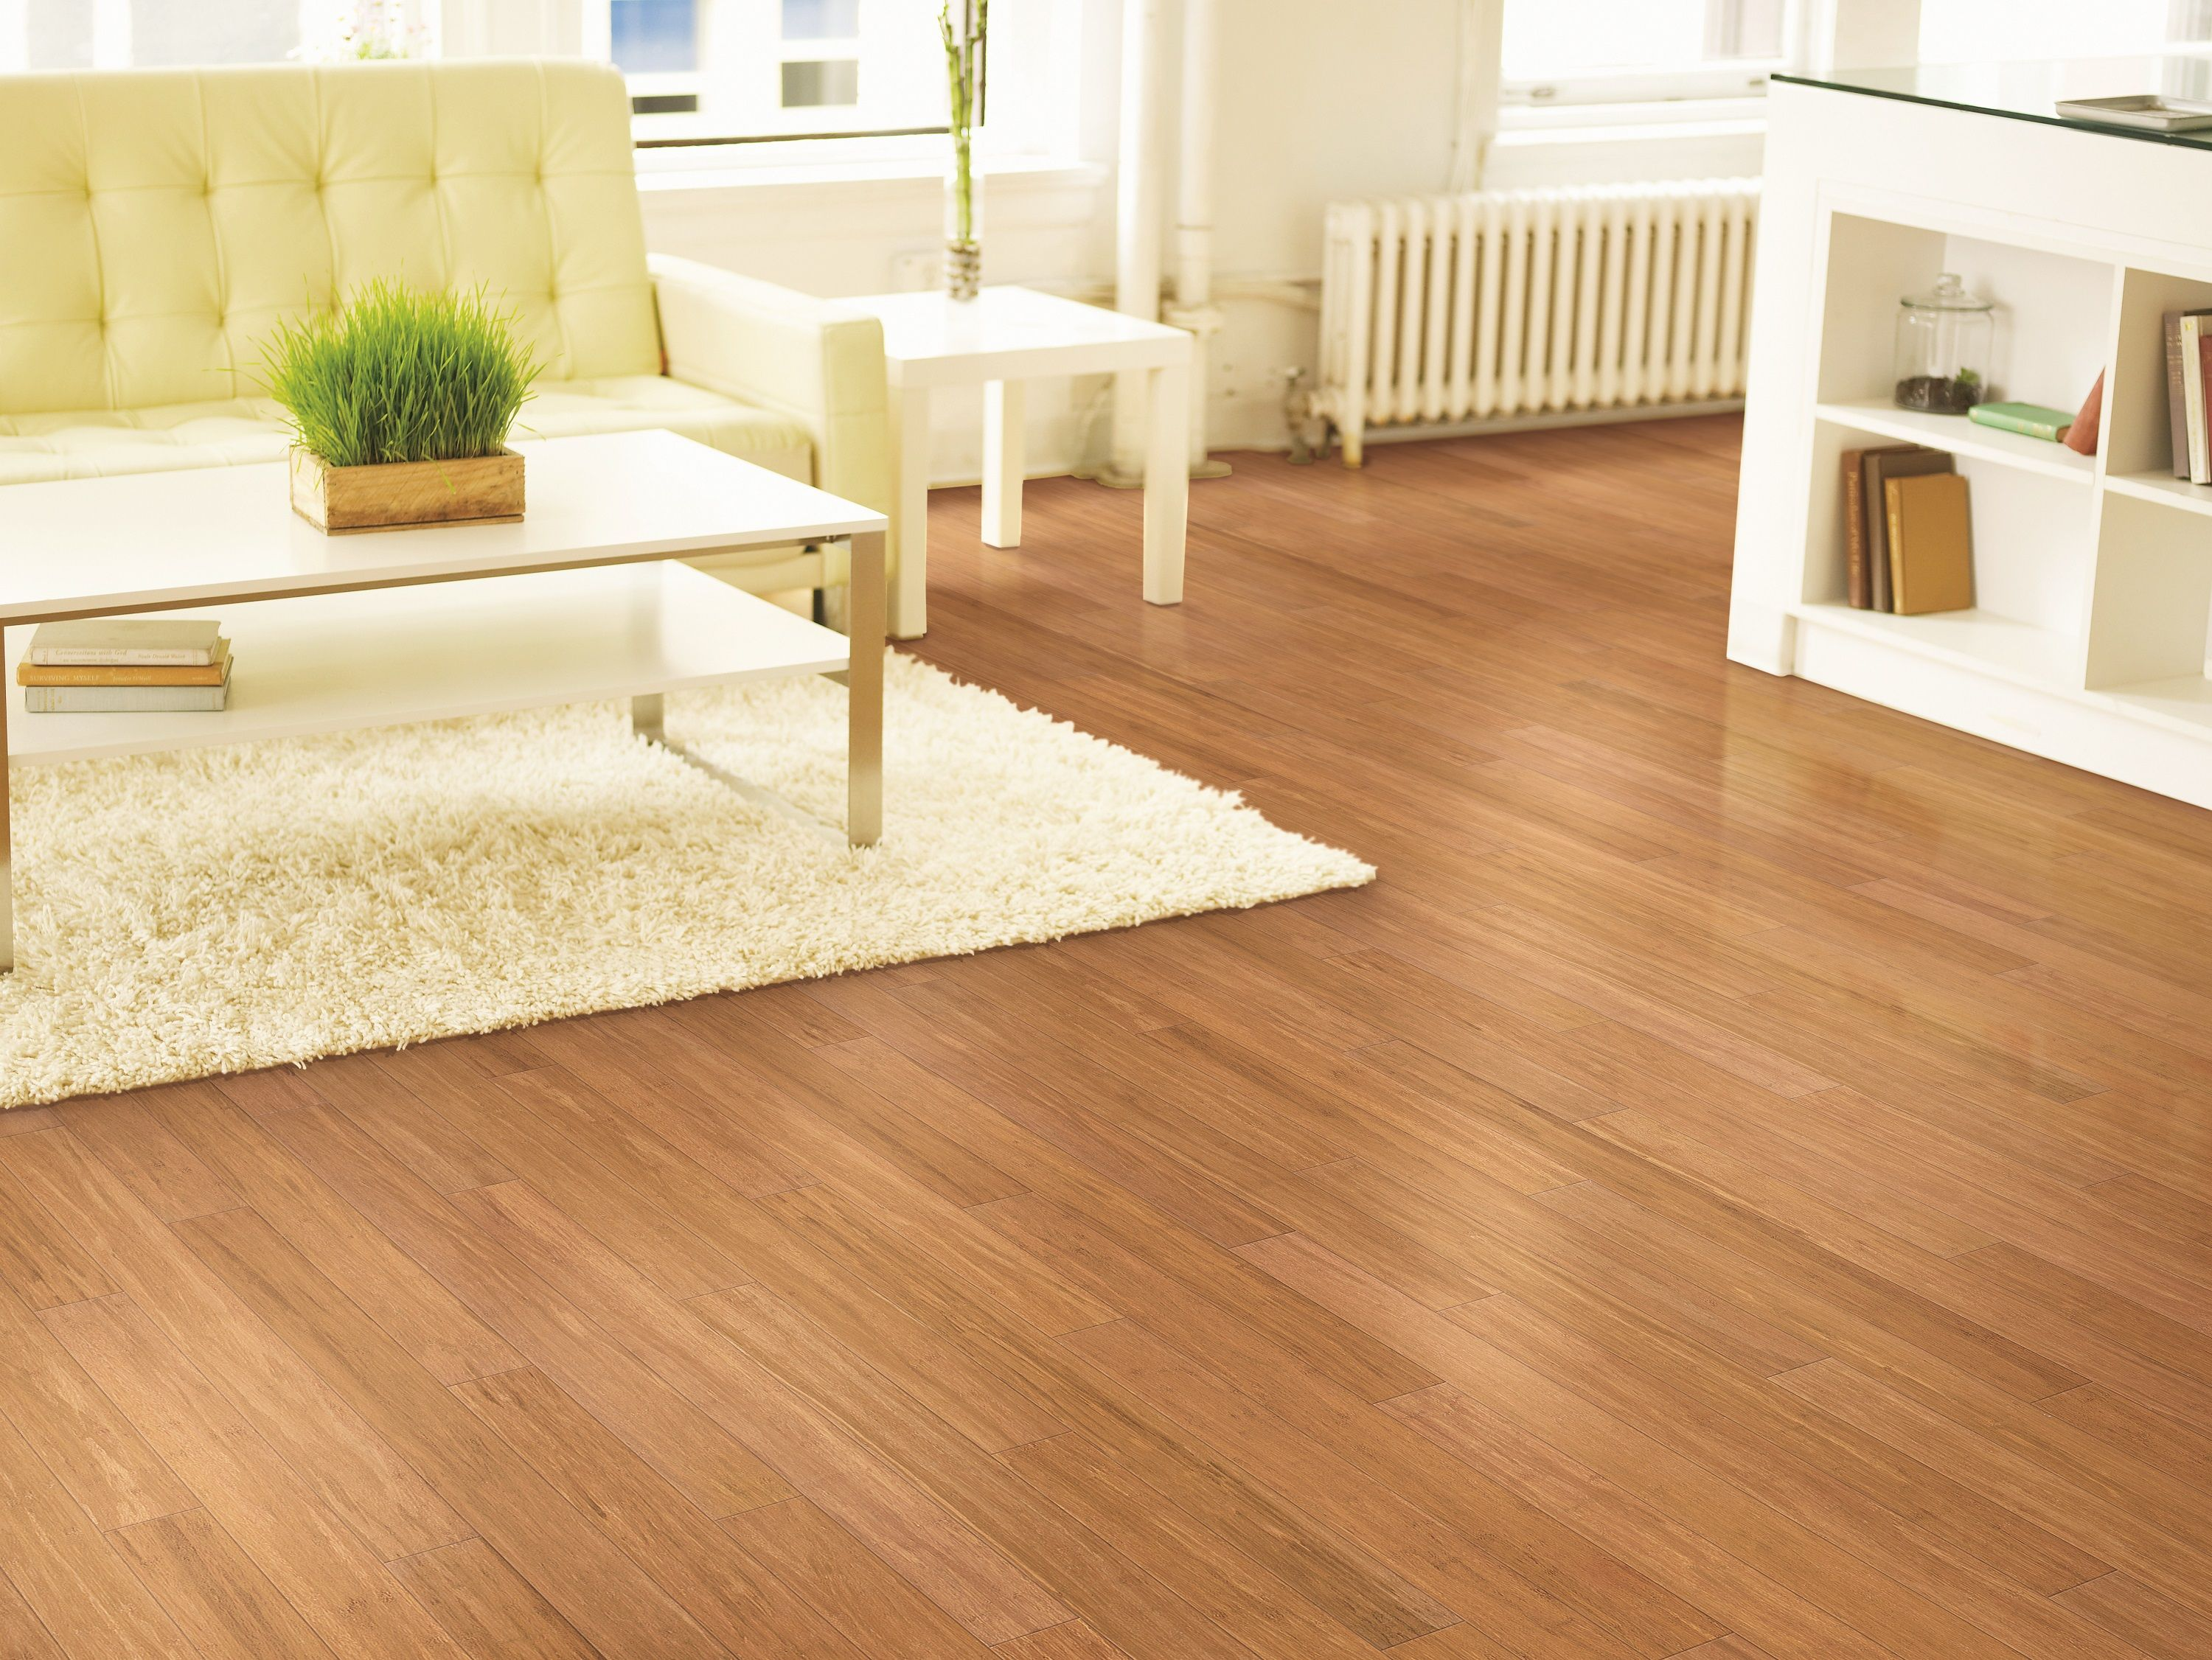 Natural Bamboo flooring hardwood floor